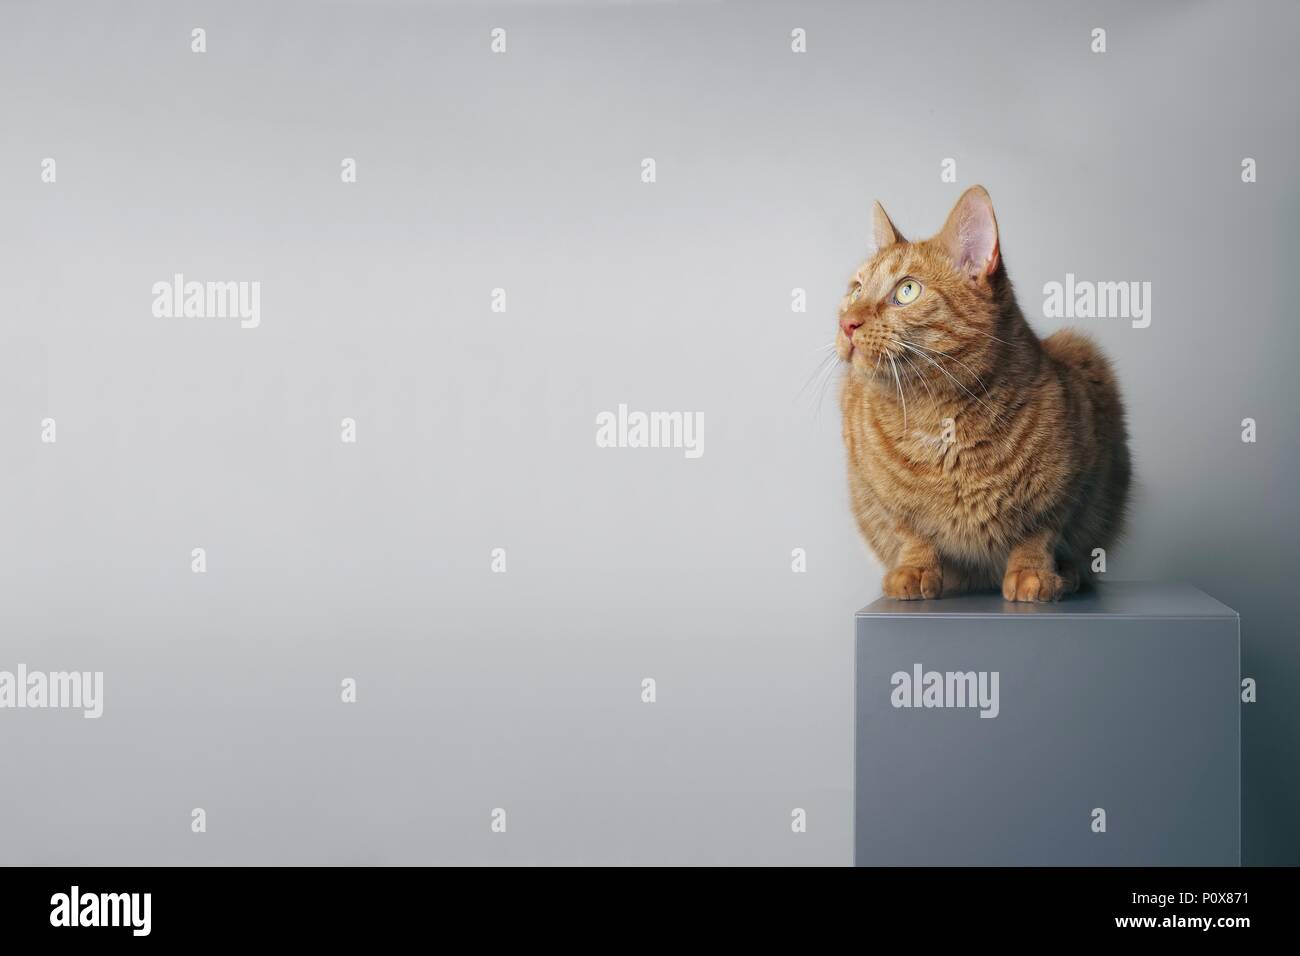 Ginger cat sitting on a grey box and looking sideways - isolated on grey backlground. - Stock Image